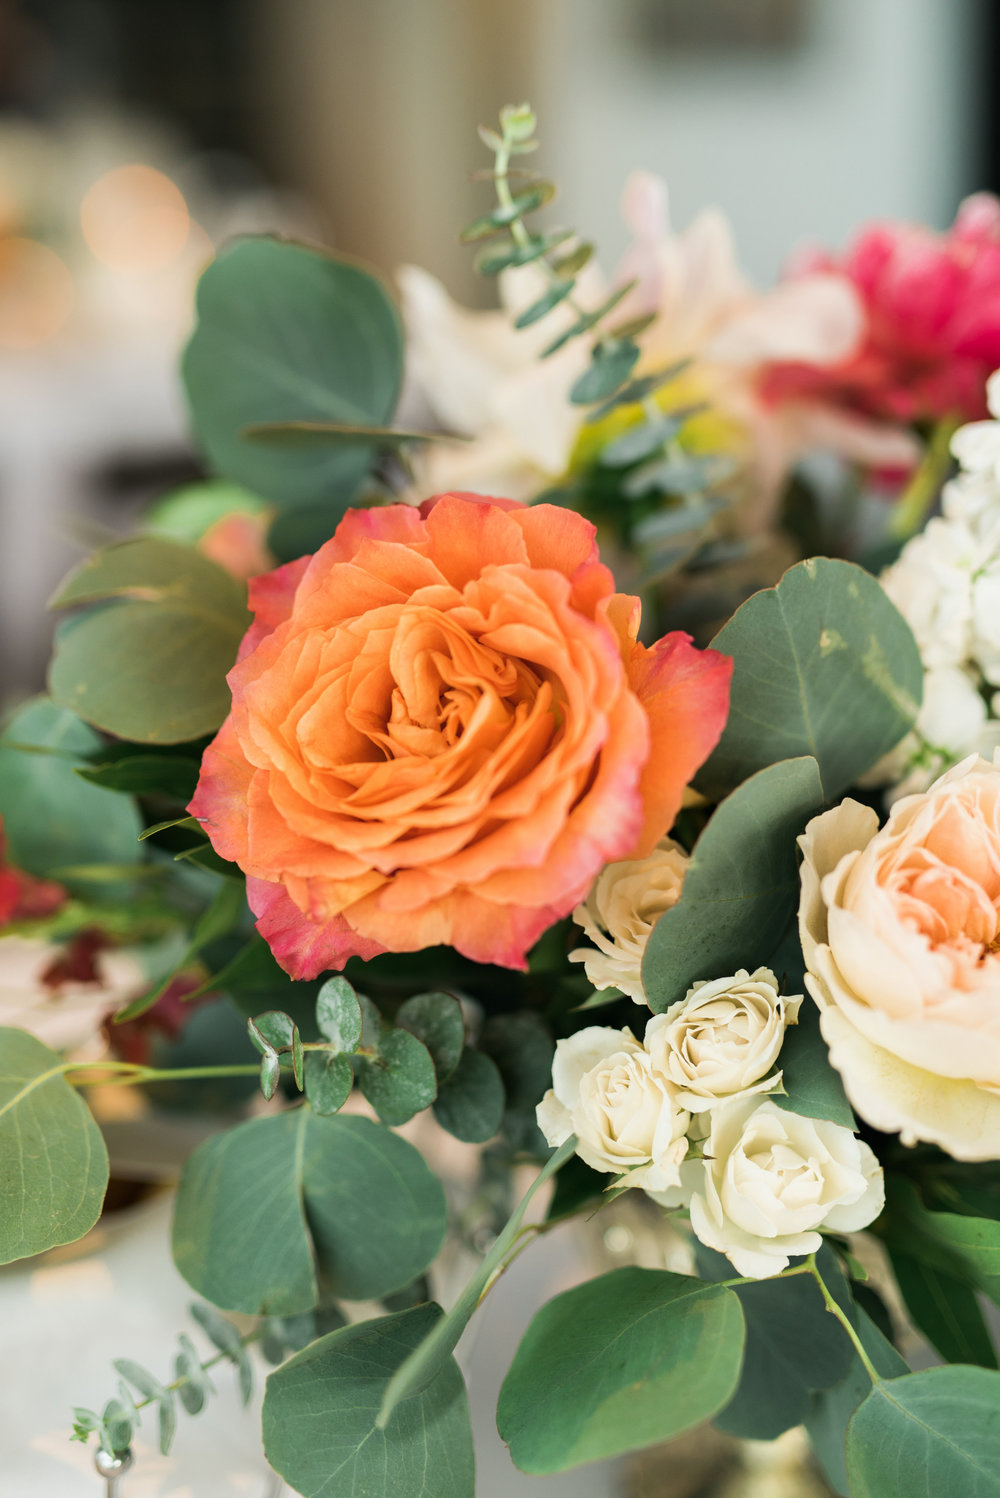 wedding flowers, orange wedding flowers, ivory wedding flowers, blush wedding flowers